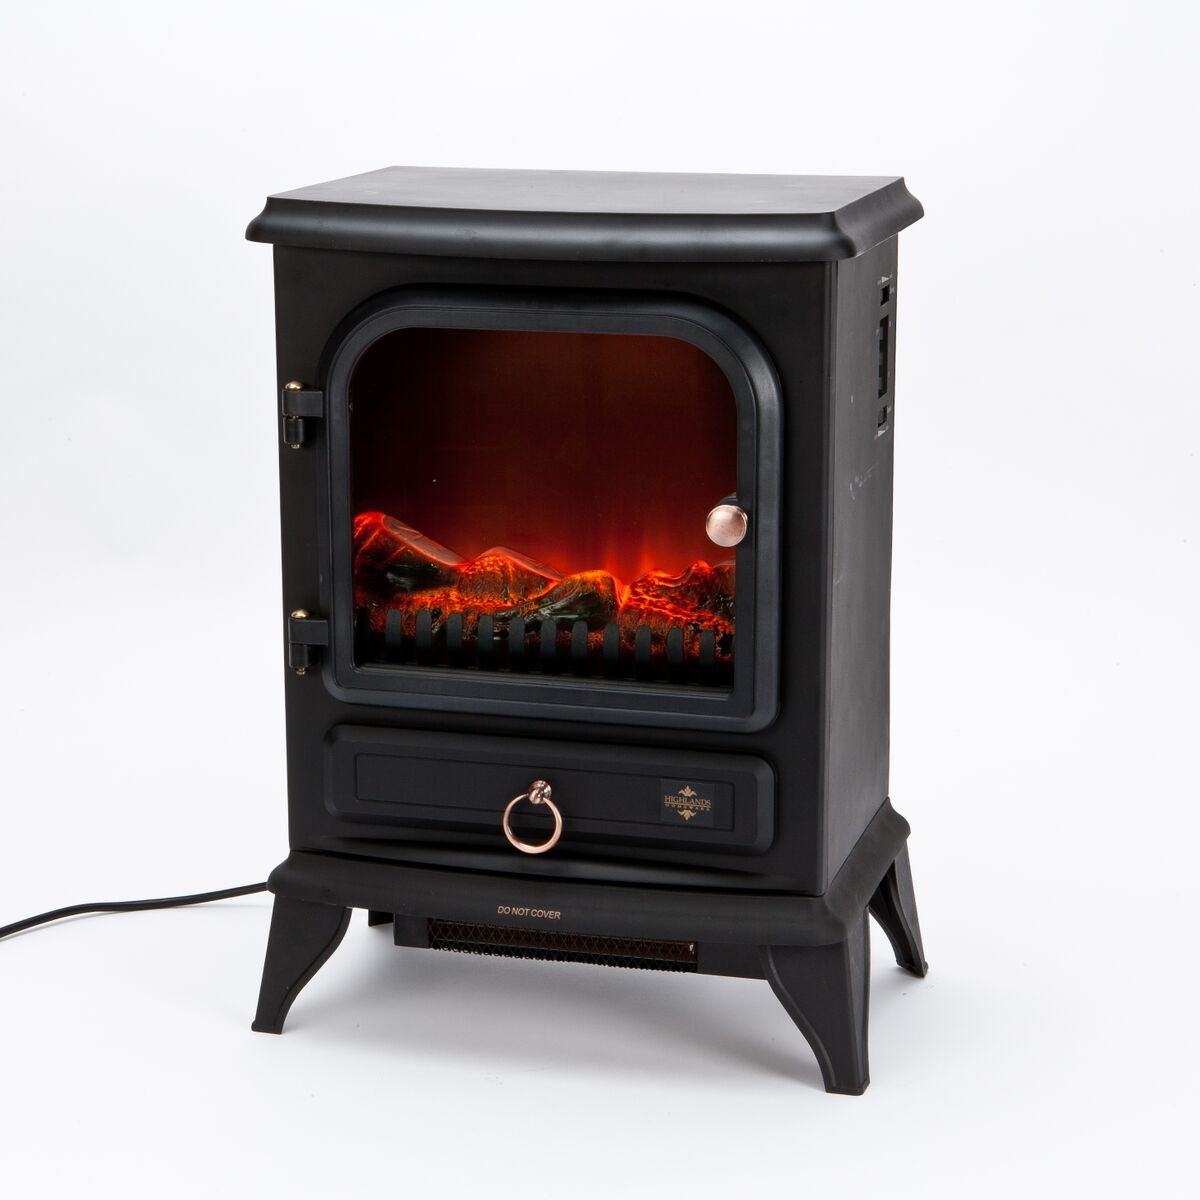 Inglenook 2000W Electric Log Flame Effect Stove Fire Heater HIGHLANDS